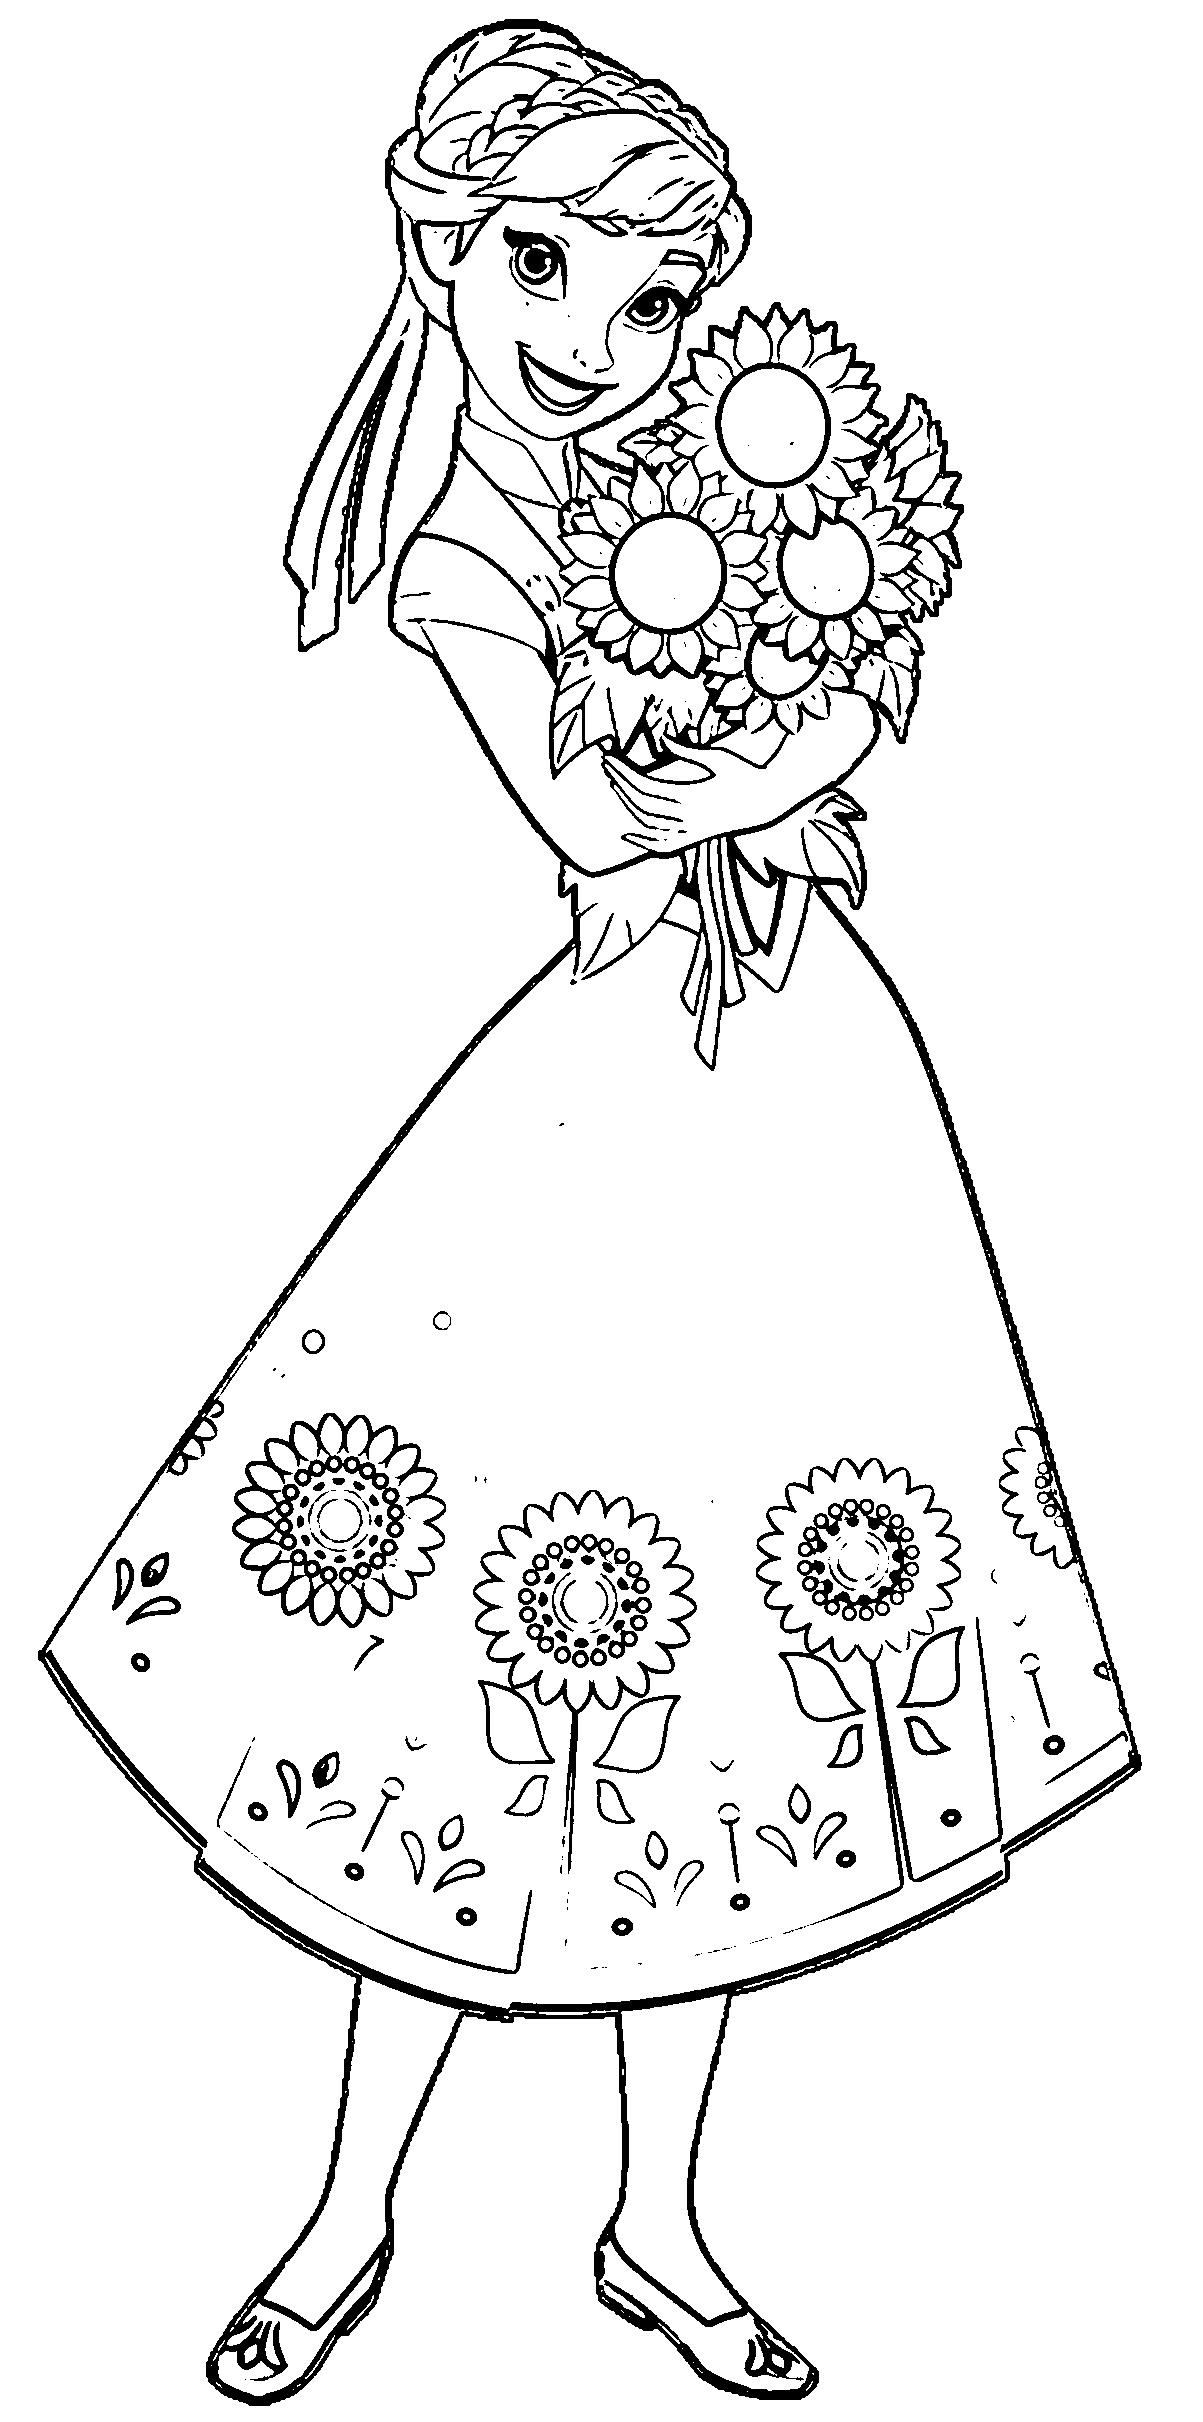 Elsa and Anna Coloring Pages Download Free Coloring Books to Print ...